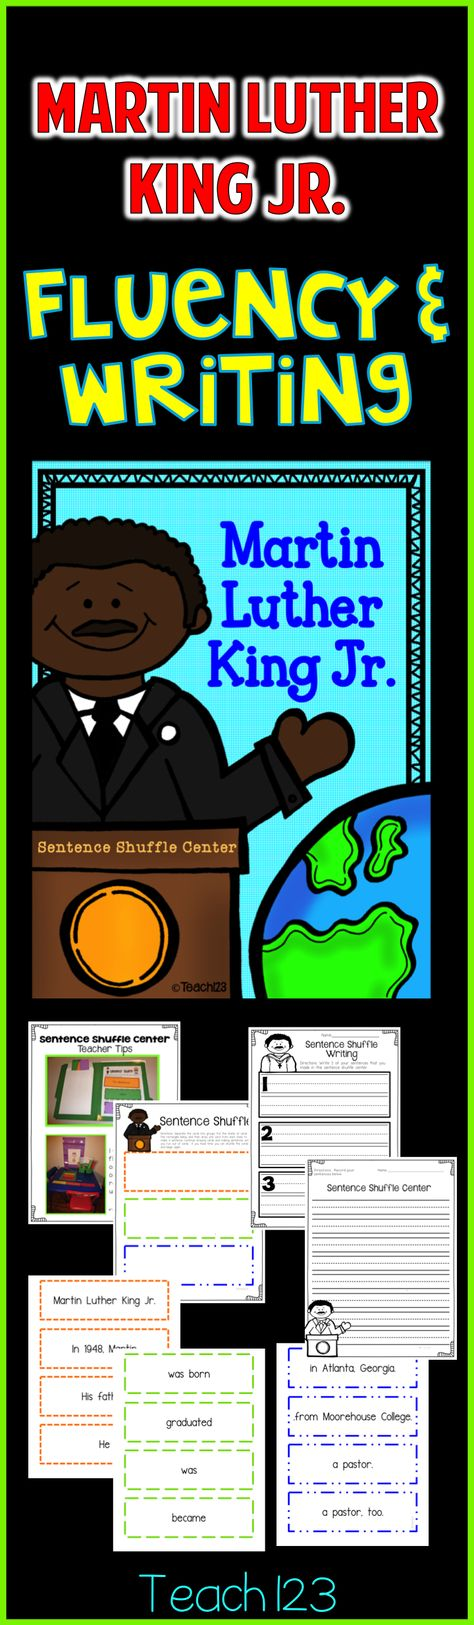 Martin Luther King Jr. - Students will learn facts about MLK while strengthening their fluency and writing skills.  This is also a great activity for your early finishers!  paid